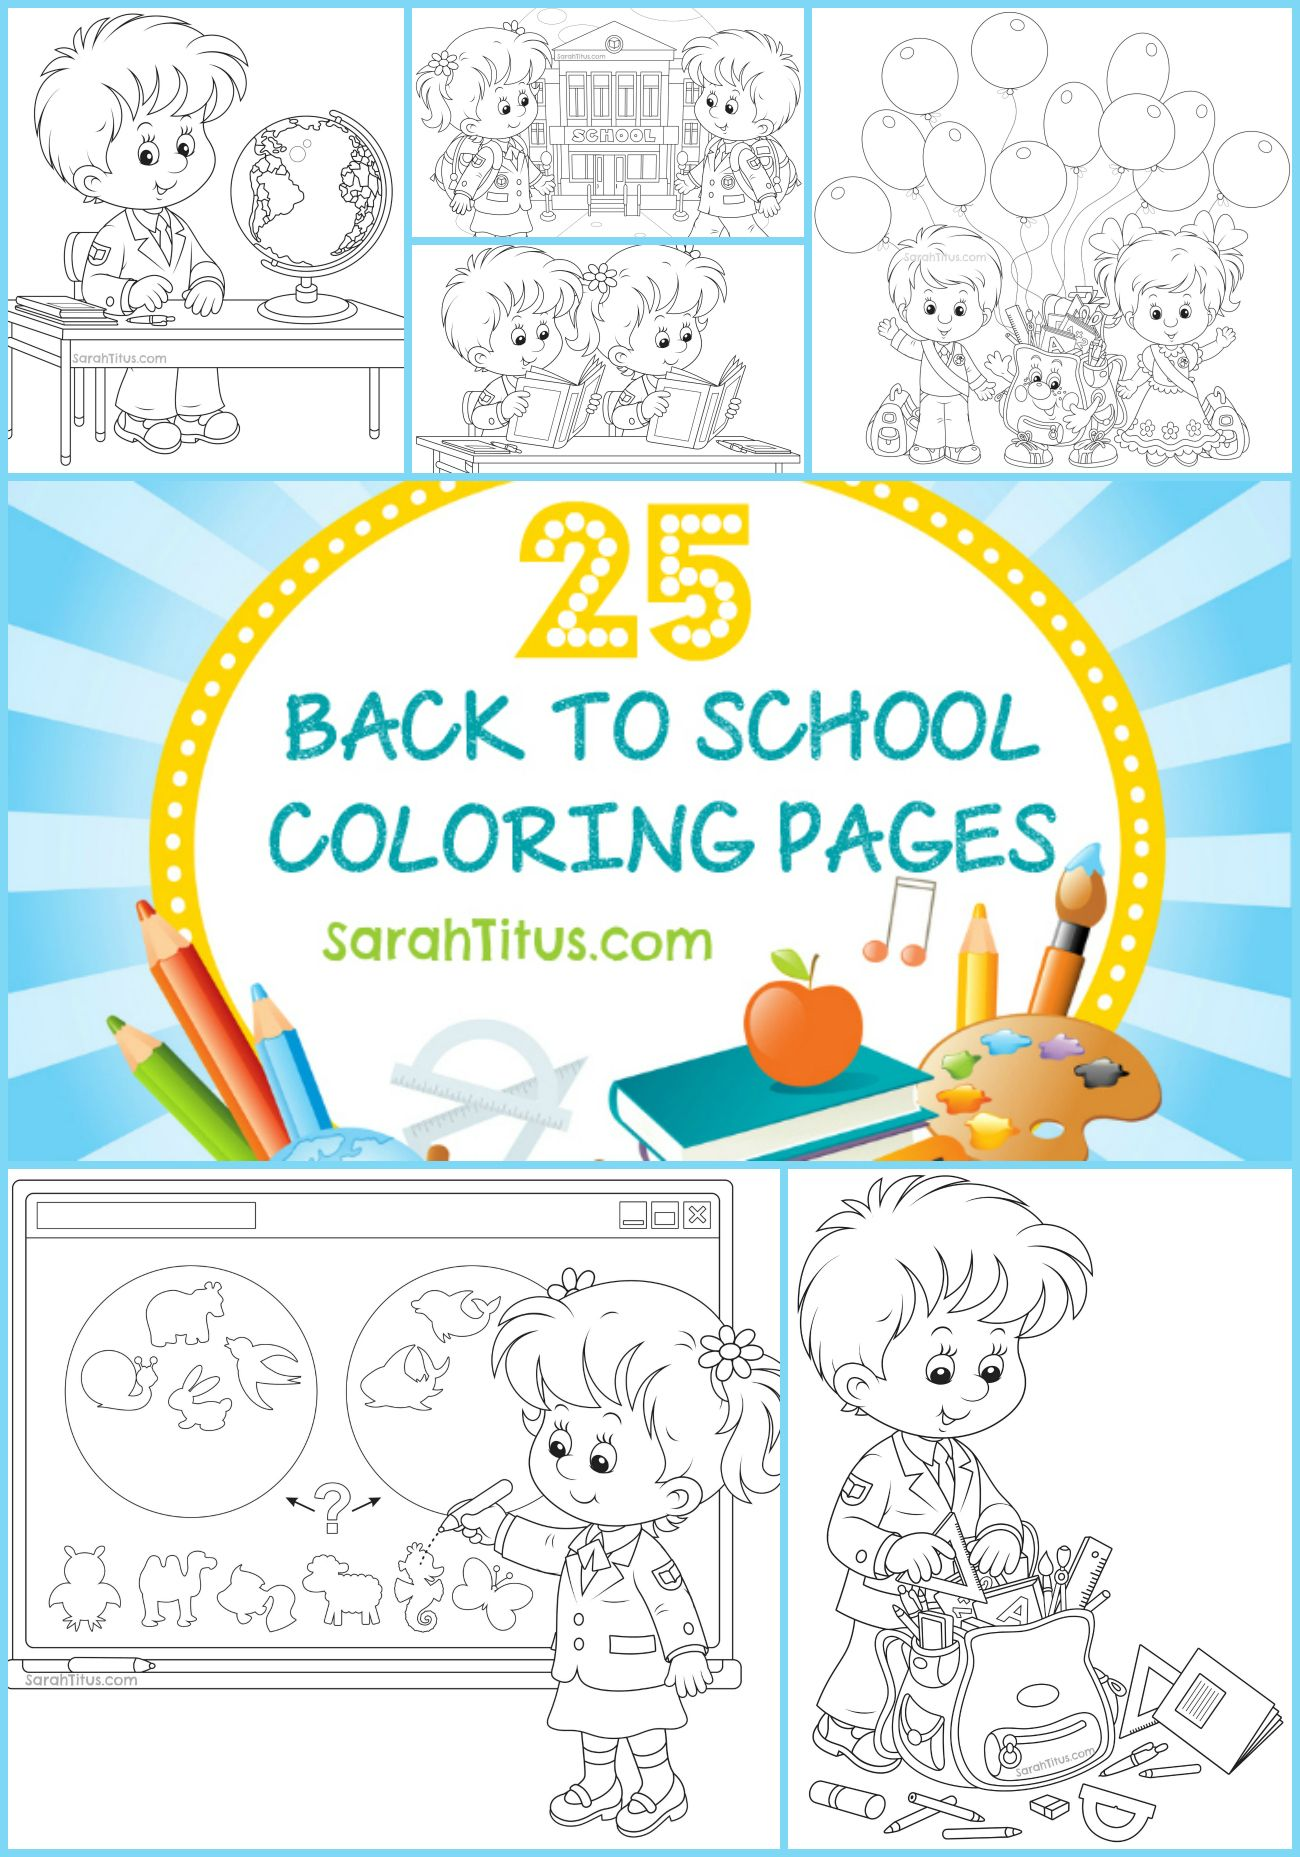 25 Back to School Coloring Pages #backtoschool #b2s